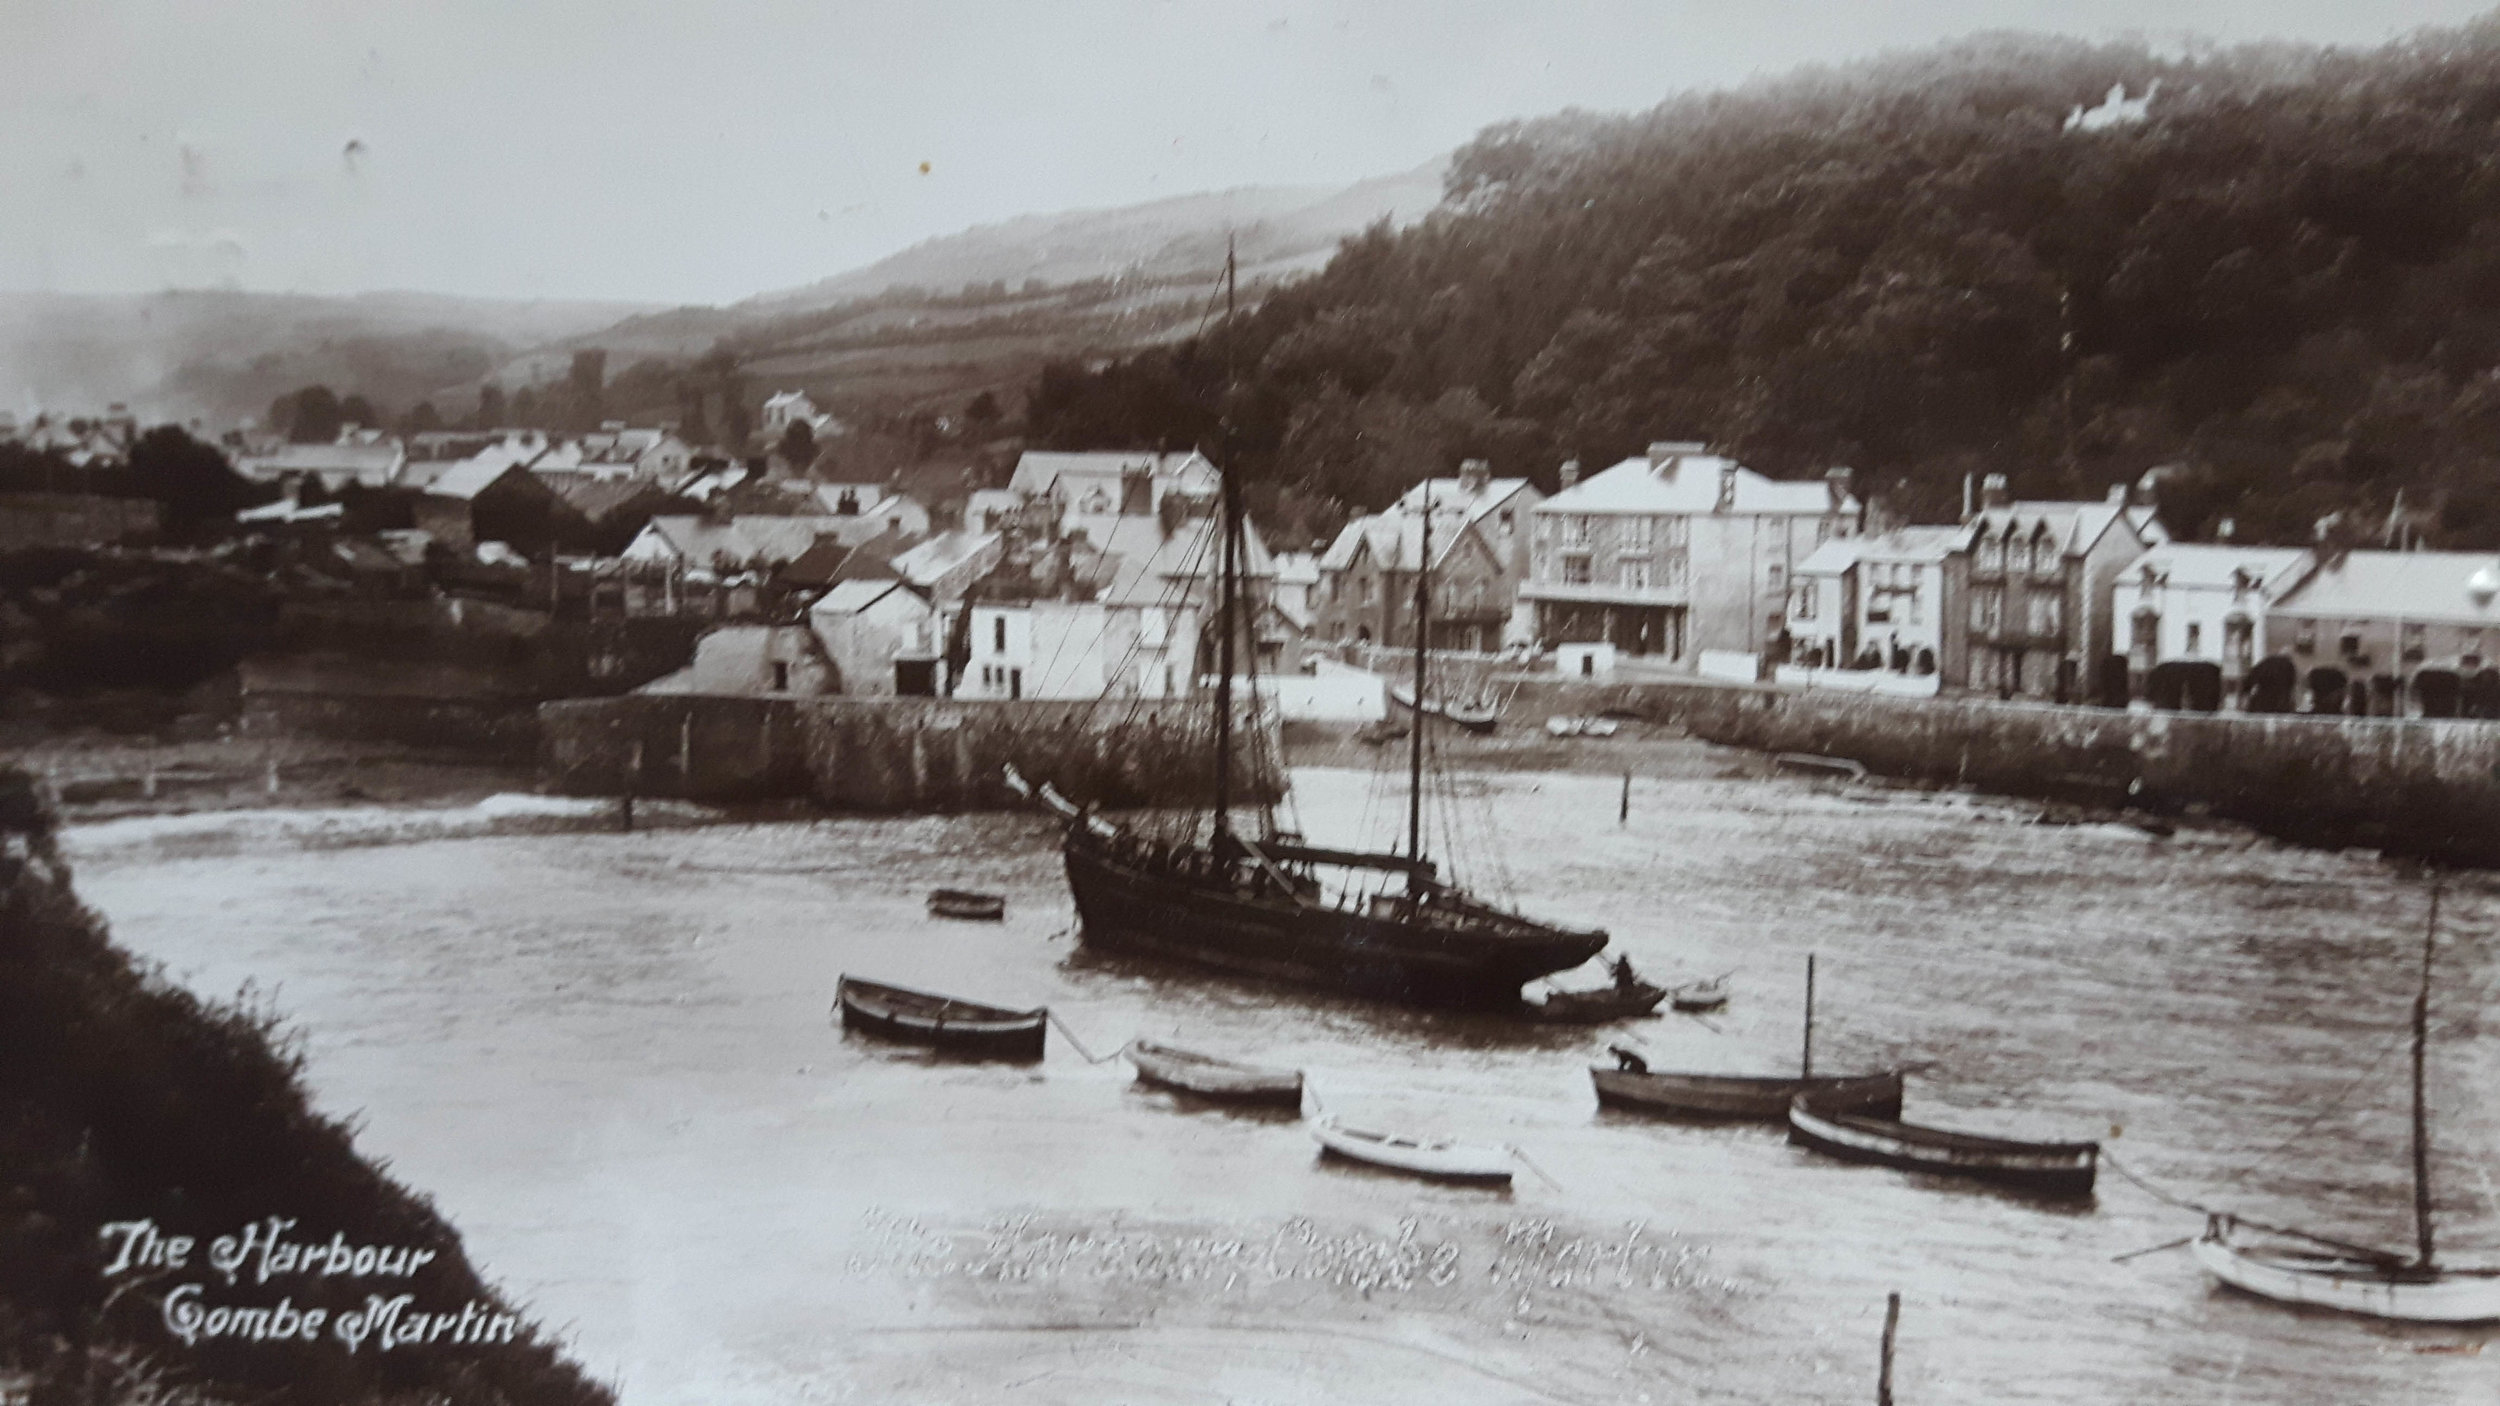 Vintage postcard of the harbour at Combe Martin